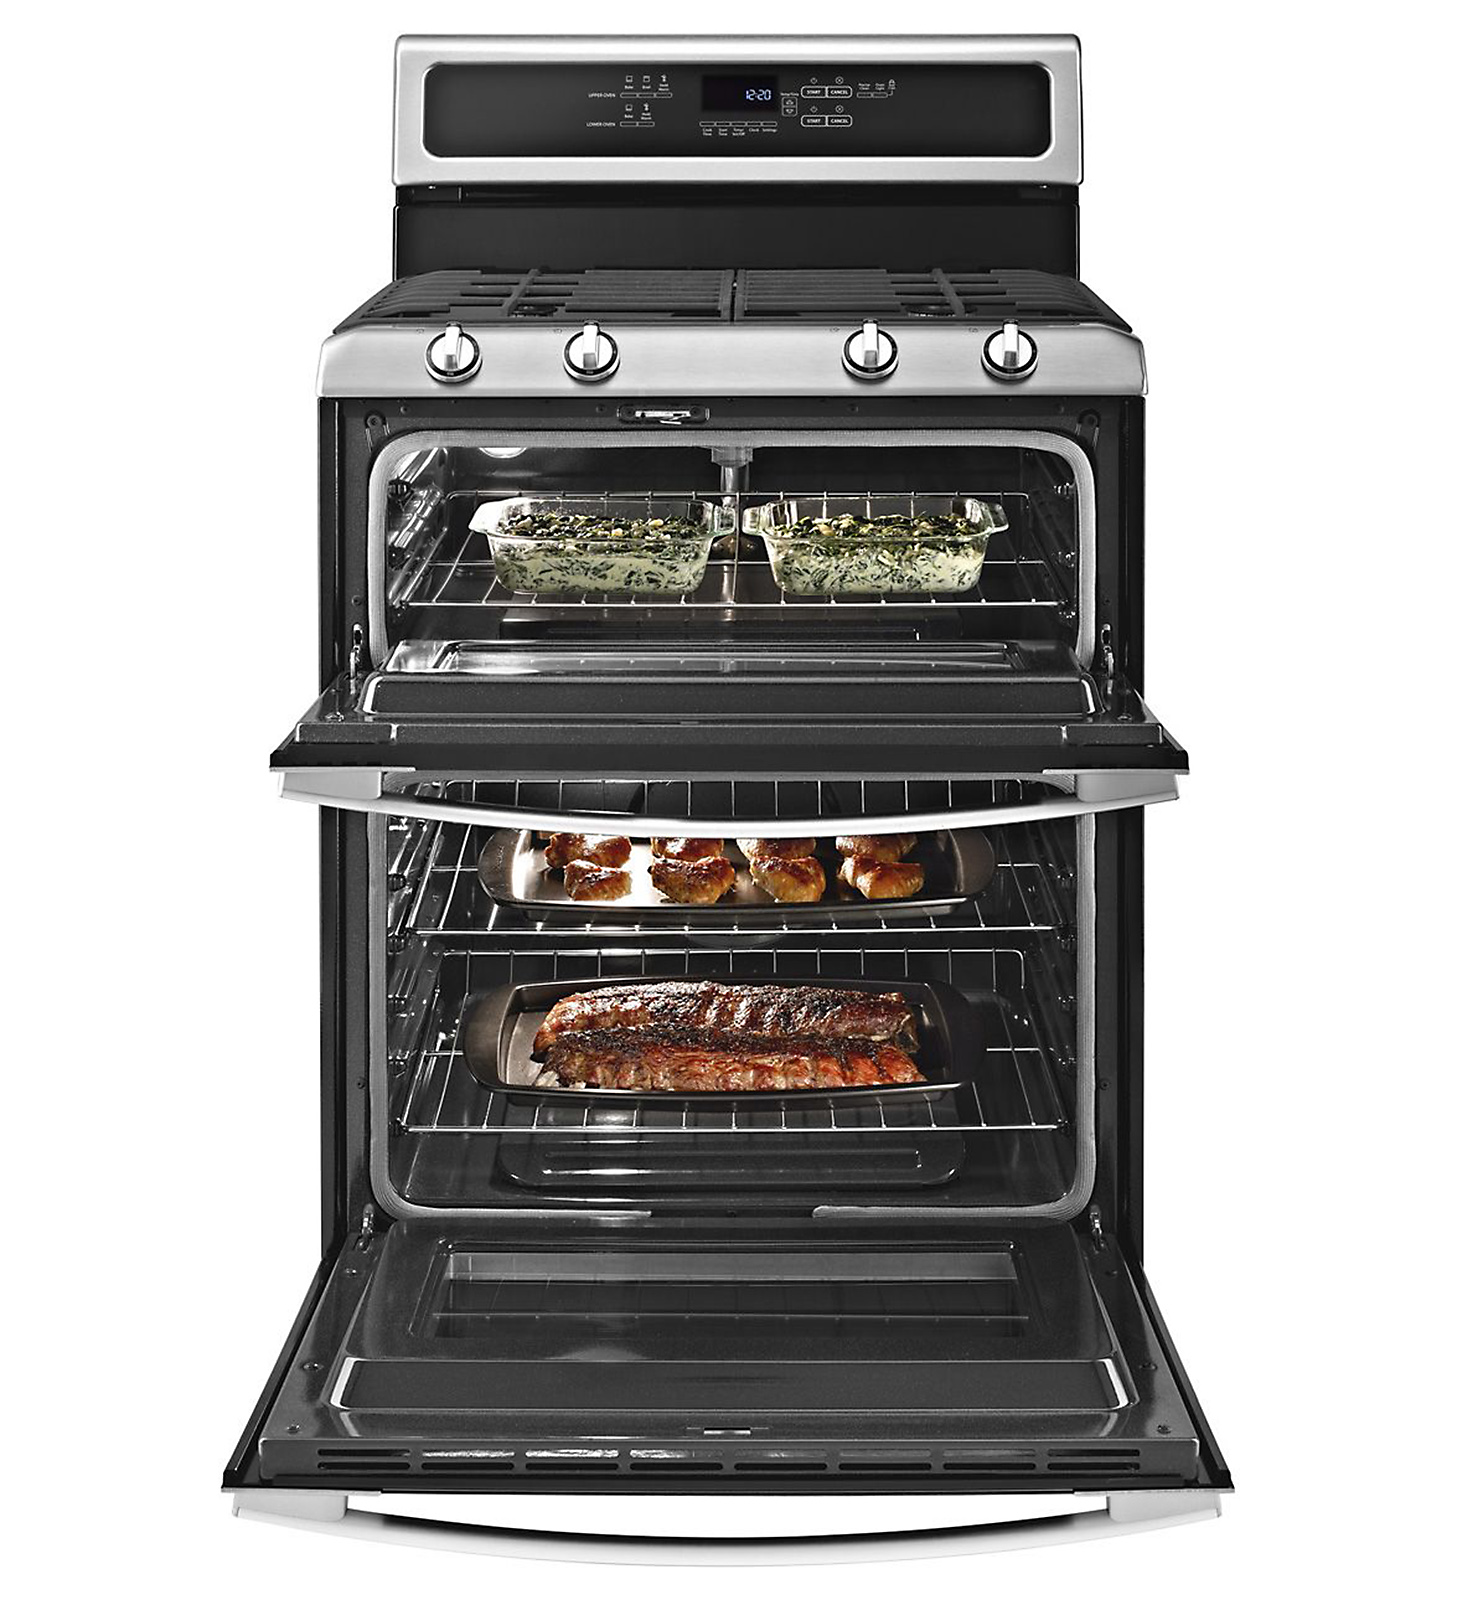 Whirlpool Gold 6 cu. ft. Double-Oven Gas Range - Stainless Steel